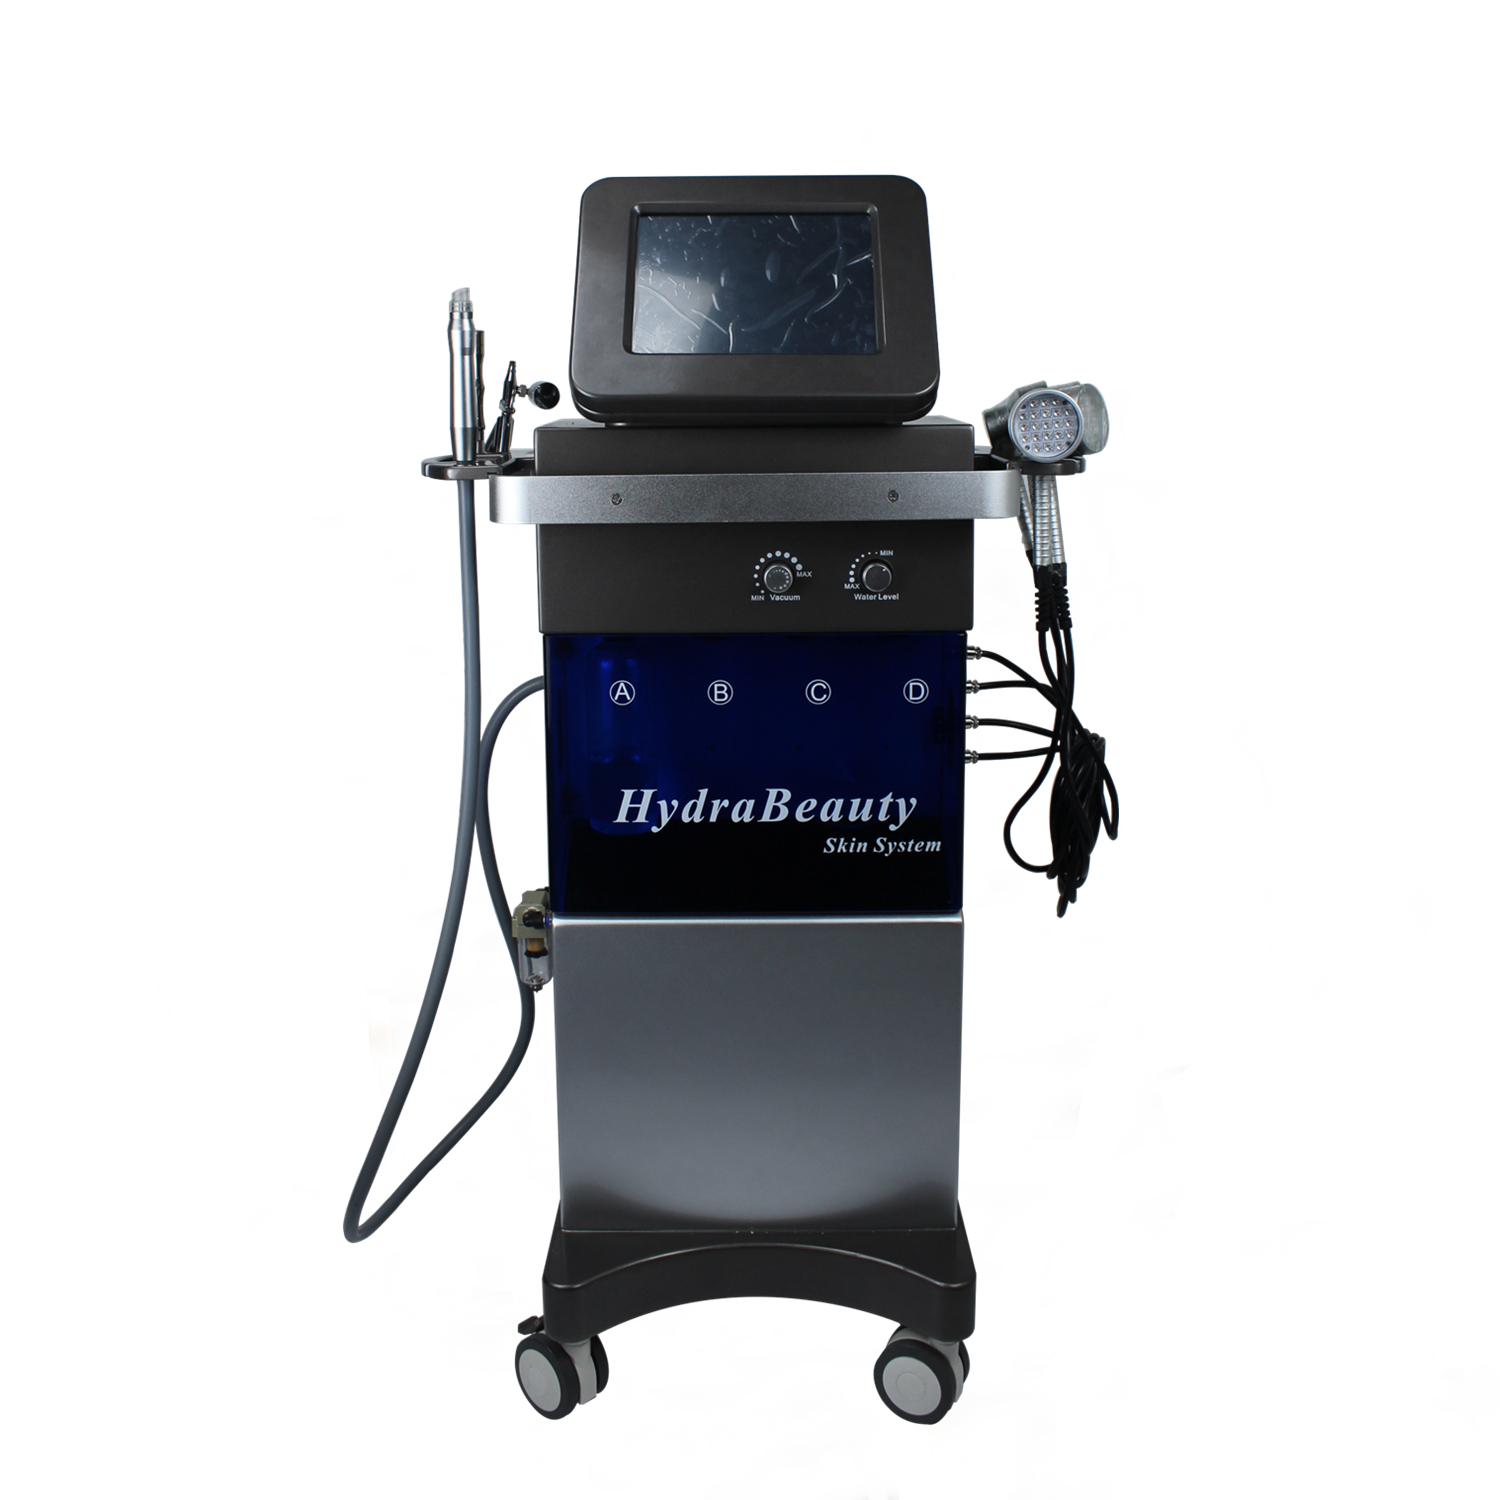 4 - 1 - oxygène facial treatment of Water skin pelleting machine pdt Light sales